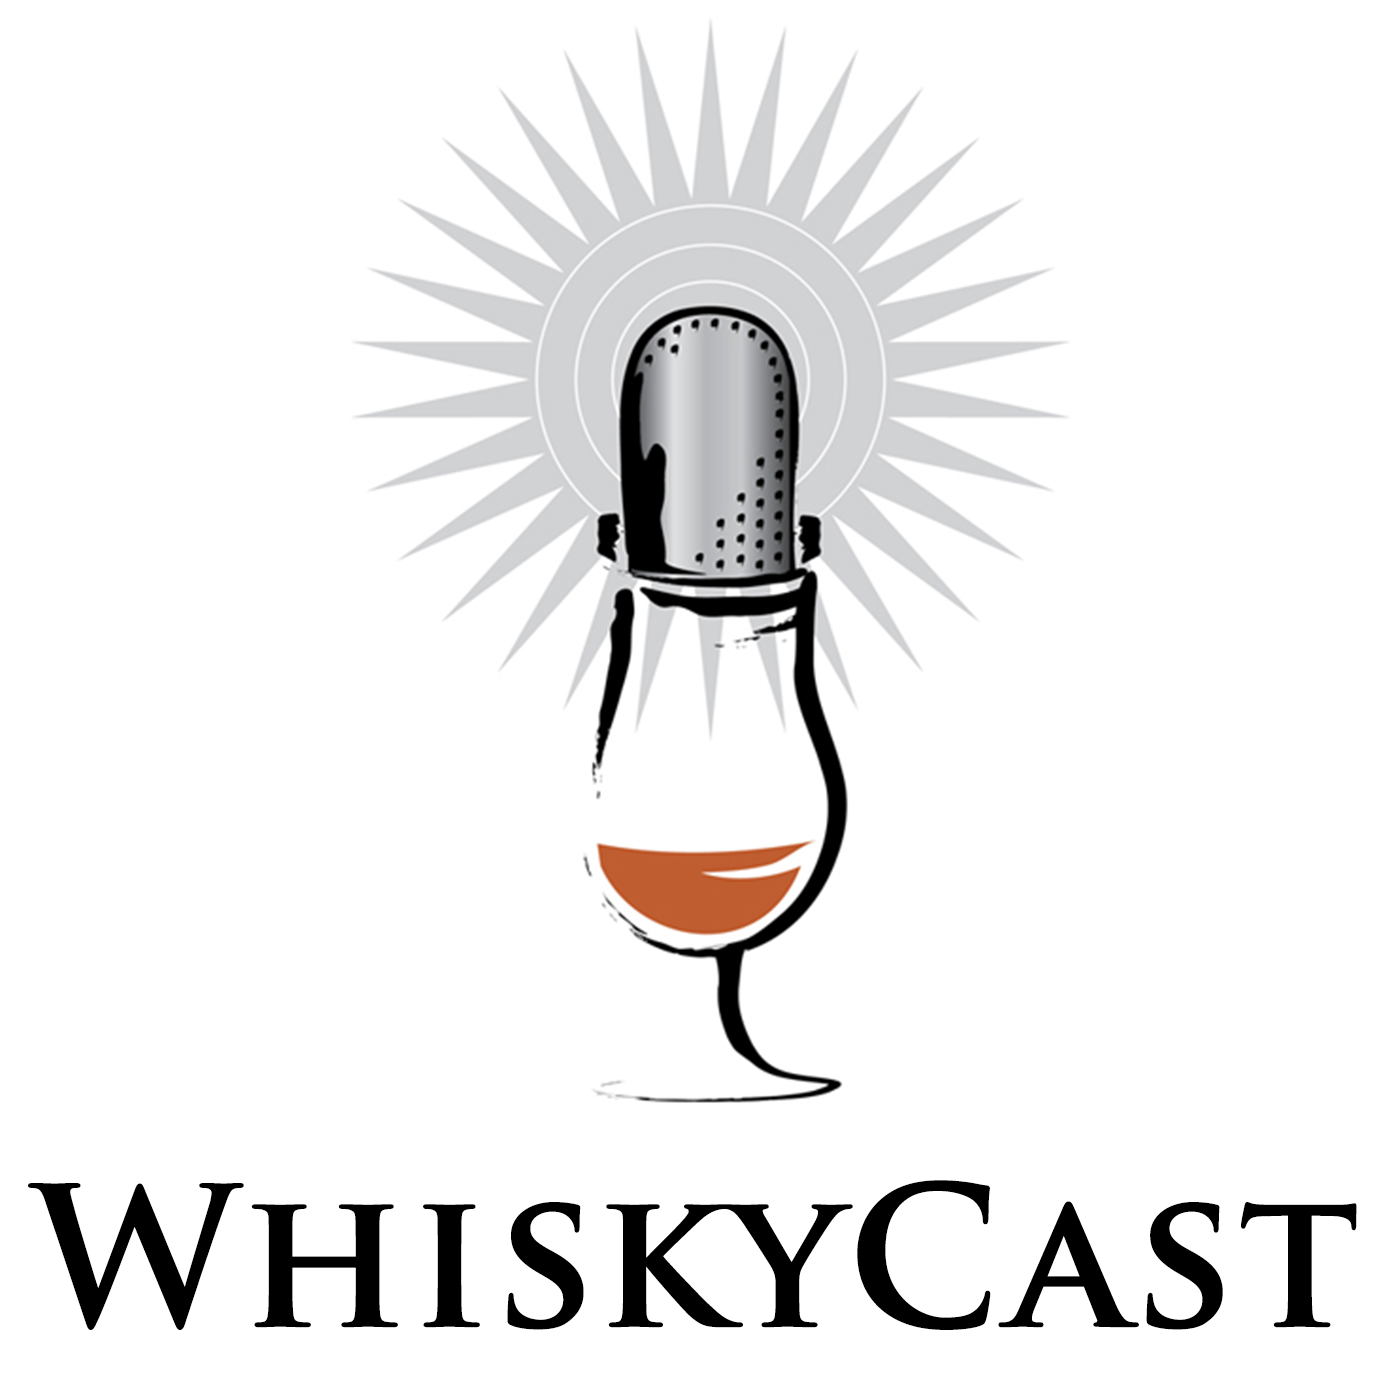 WhiskyCast Episode 424: May 12, 2013